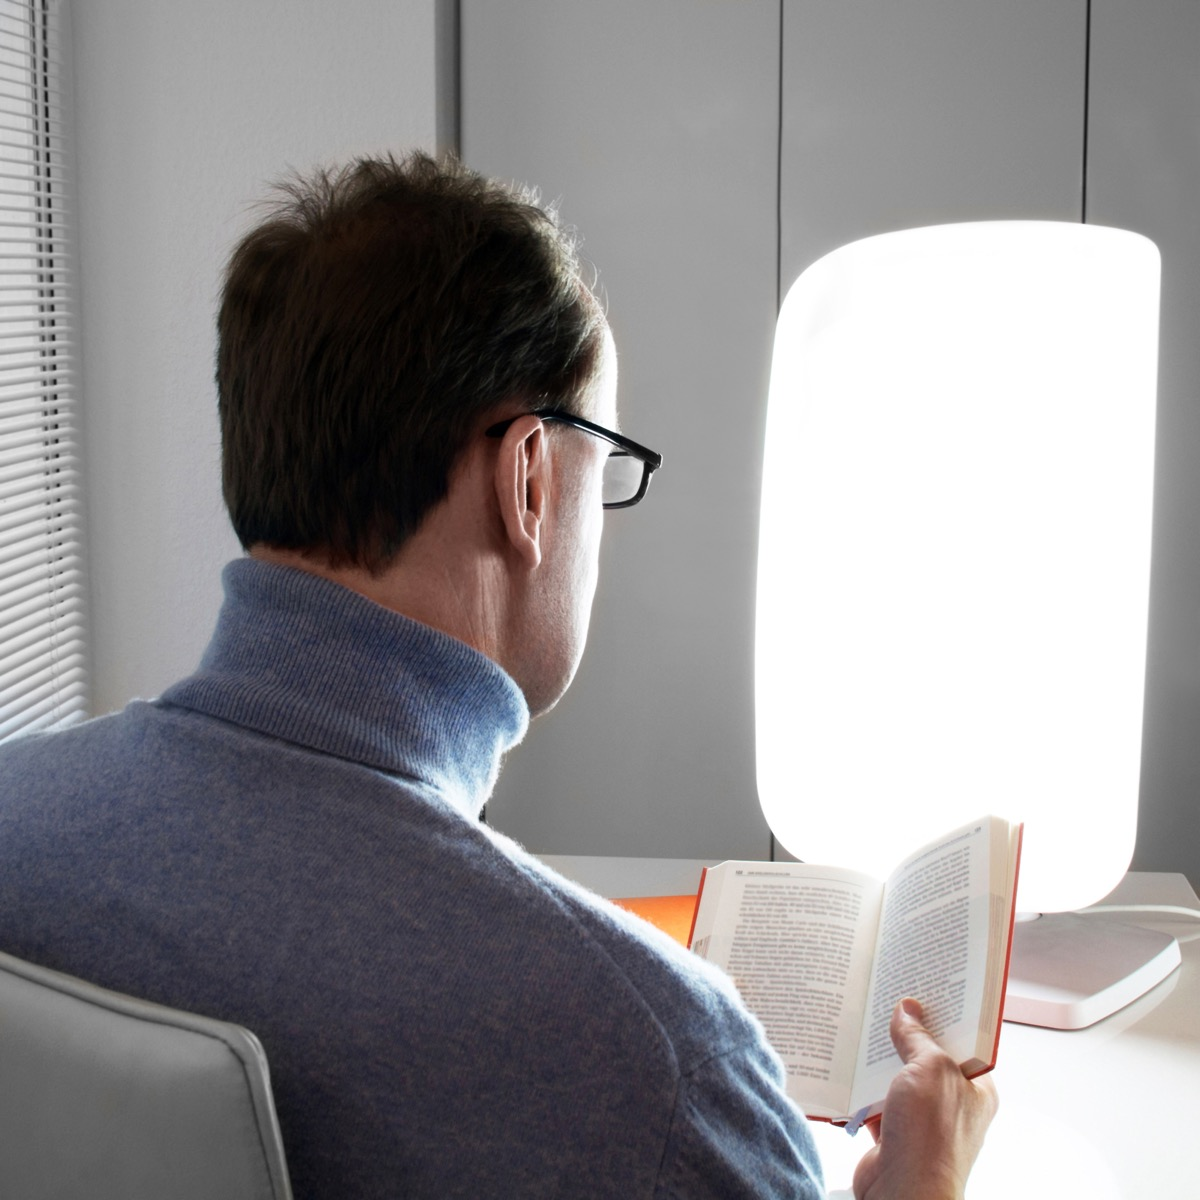 Man using a bright light to beat the winter blues